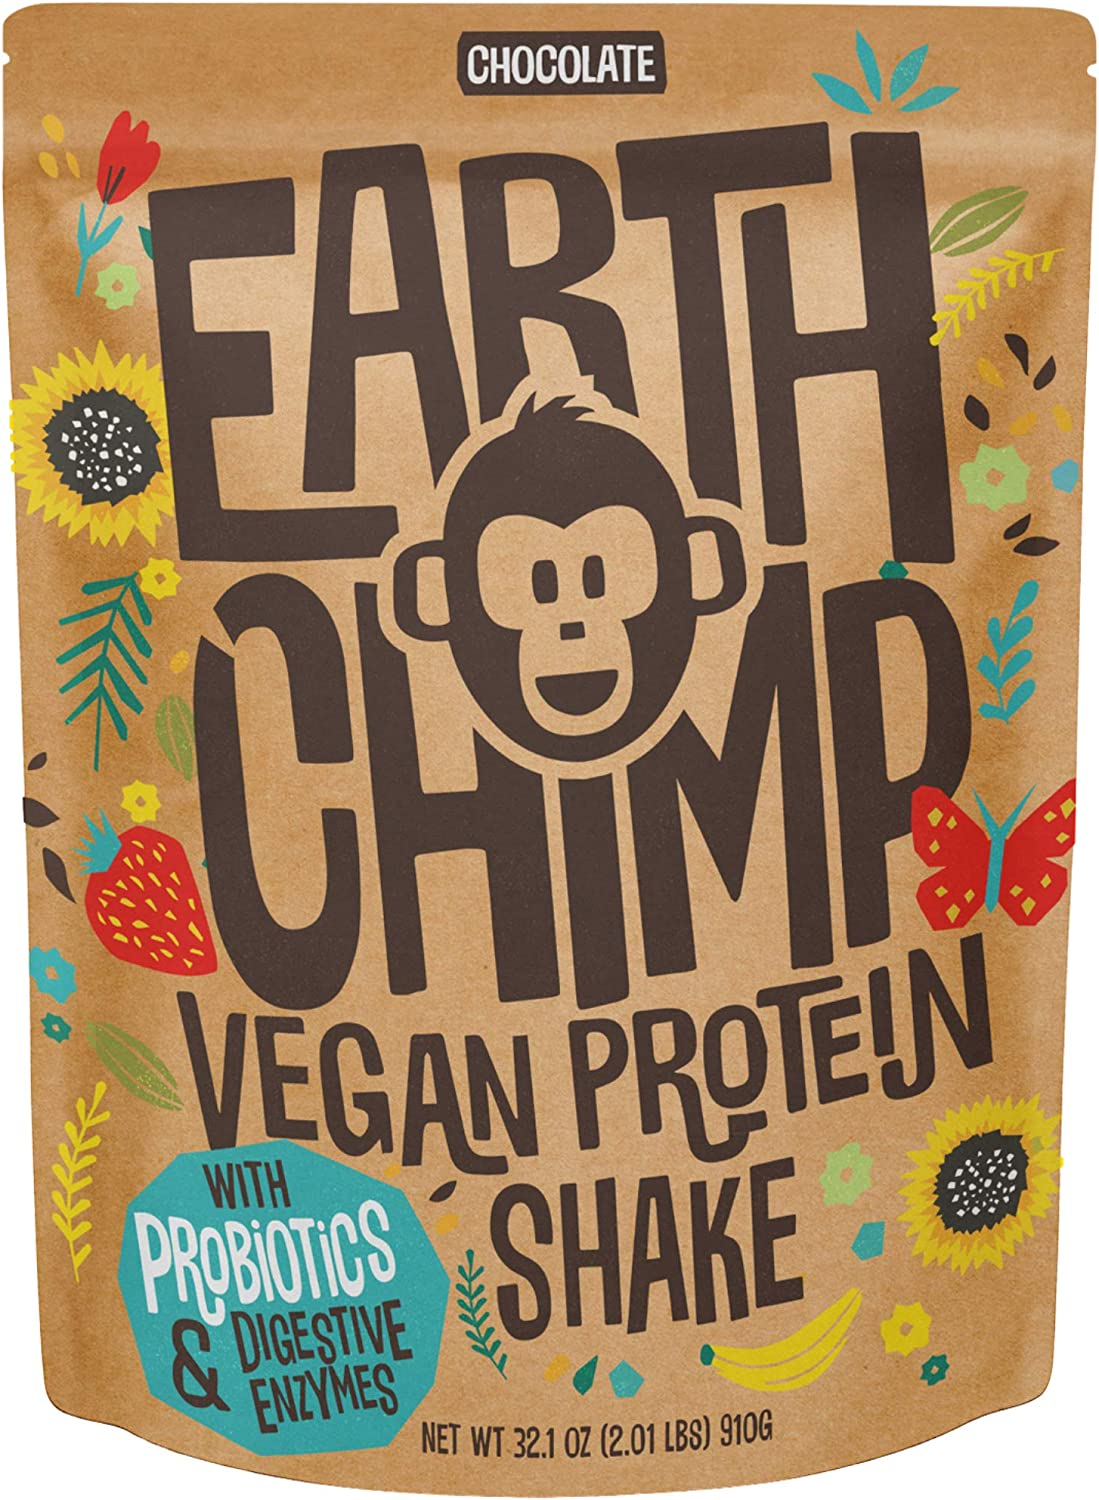 EarthChimp Vegan Protein Powder